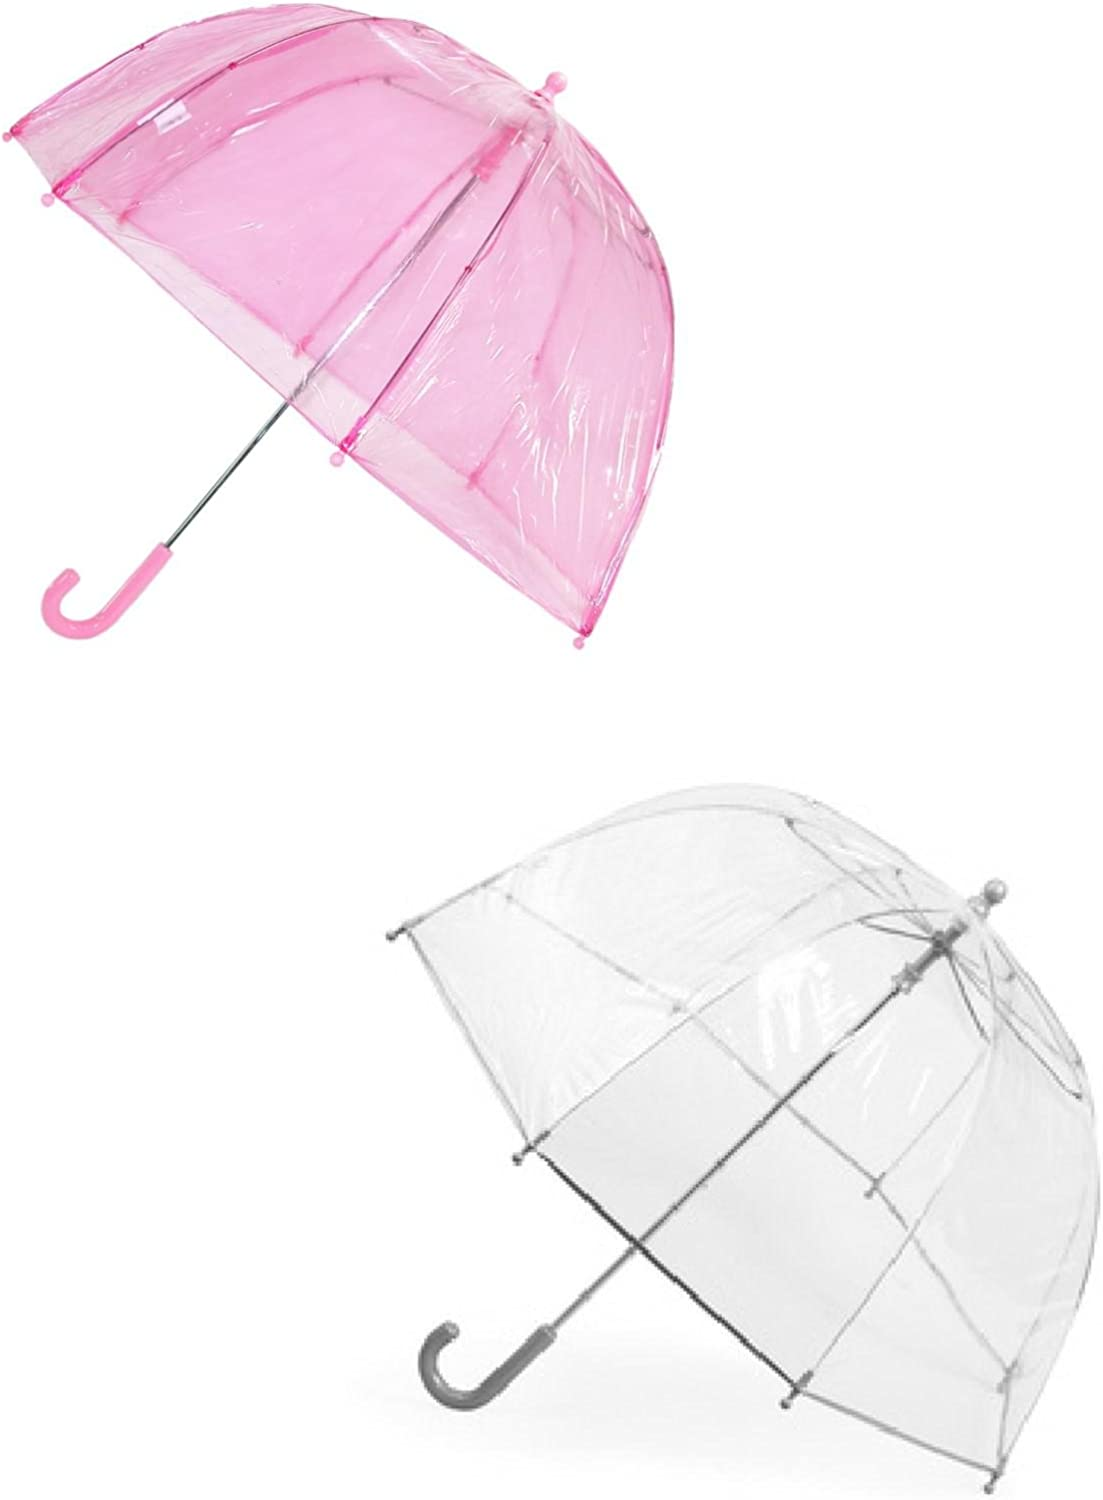 Totes Kids' Clear Bubble Umbrella (Pack of 2), Pink/Clear